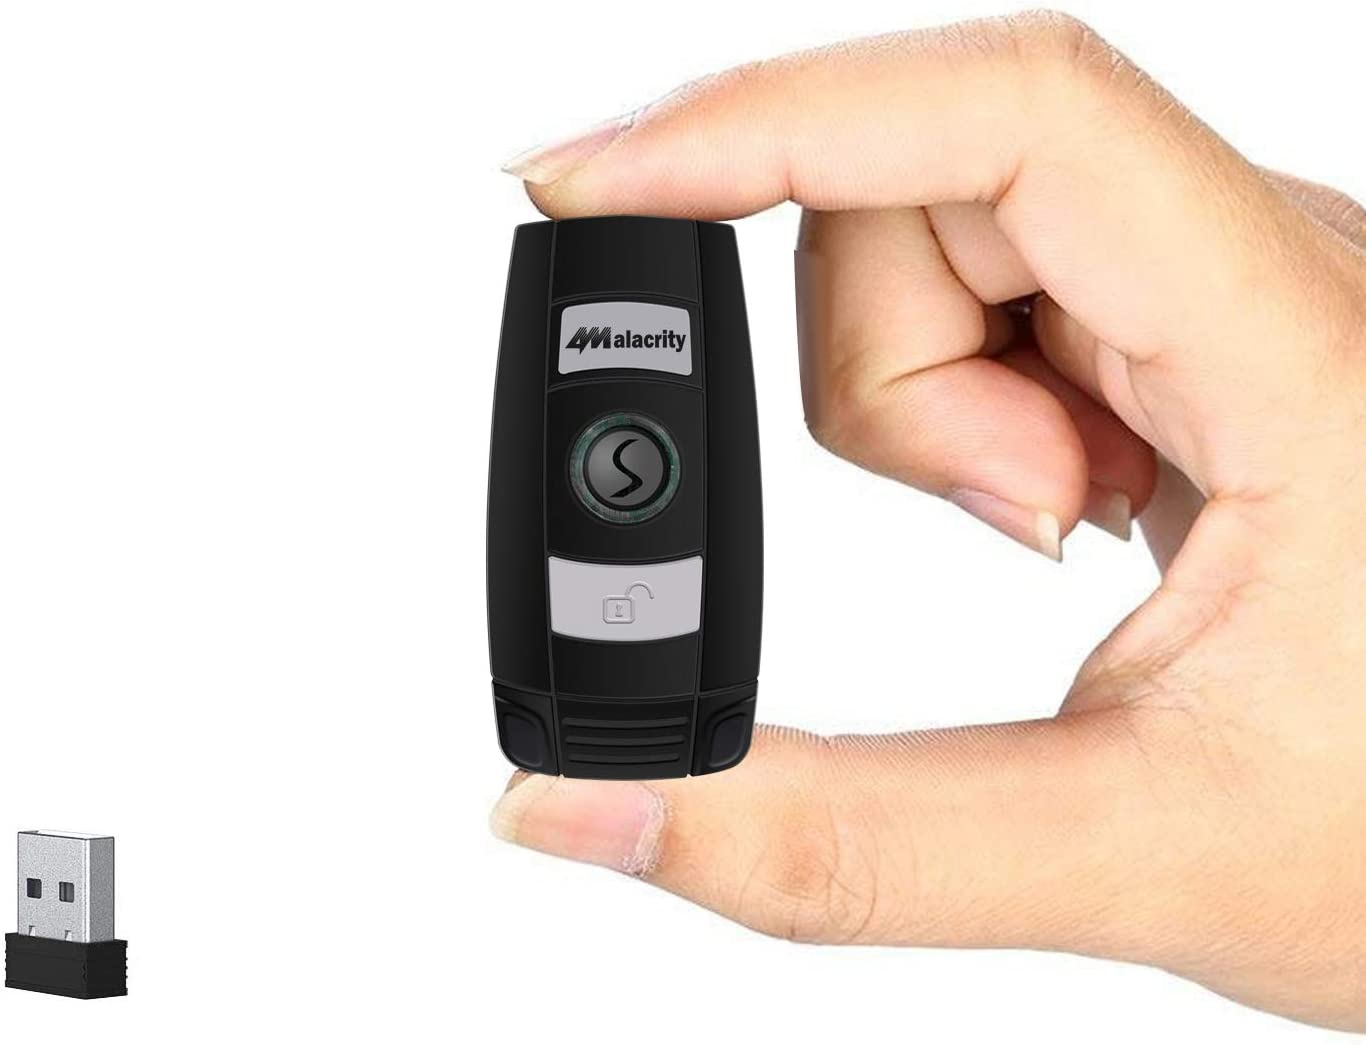 1D 2D Bluetooth Wireless Barcode Scanner,Alacrity Portable QR Handheld Mini Barcode Reader for Windows,Android,iOS,Mac.Able to Scan Codes on Screen